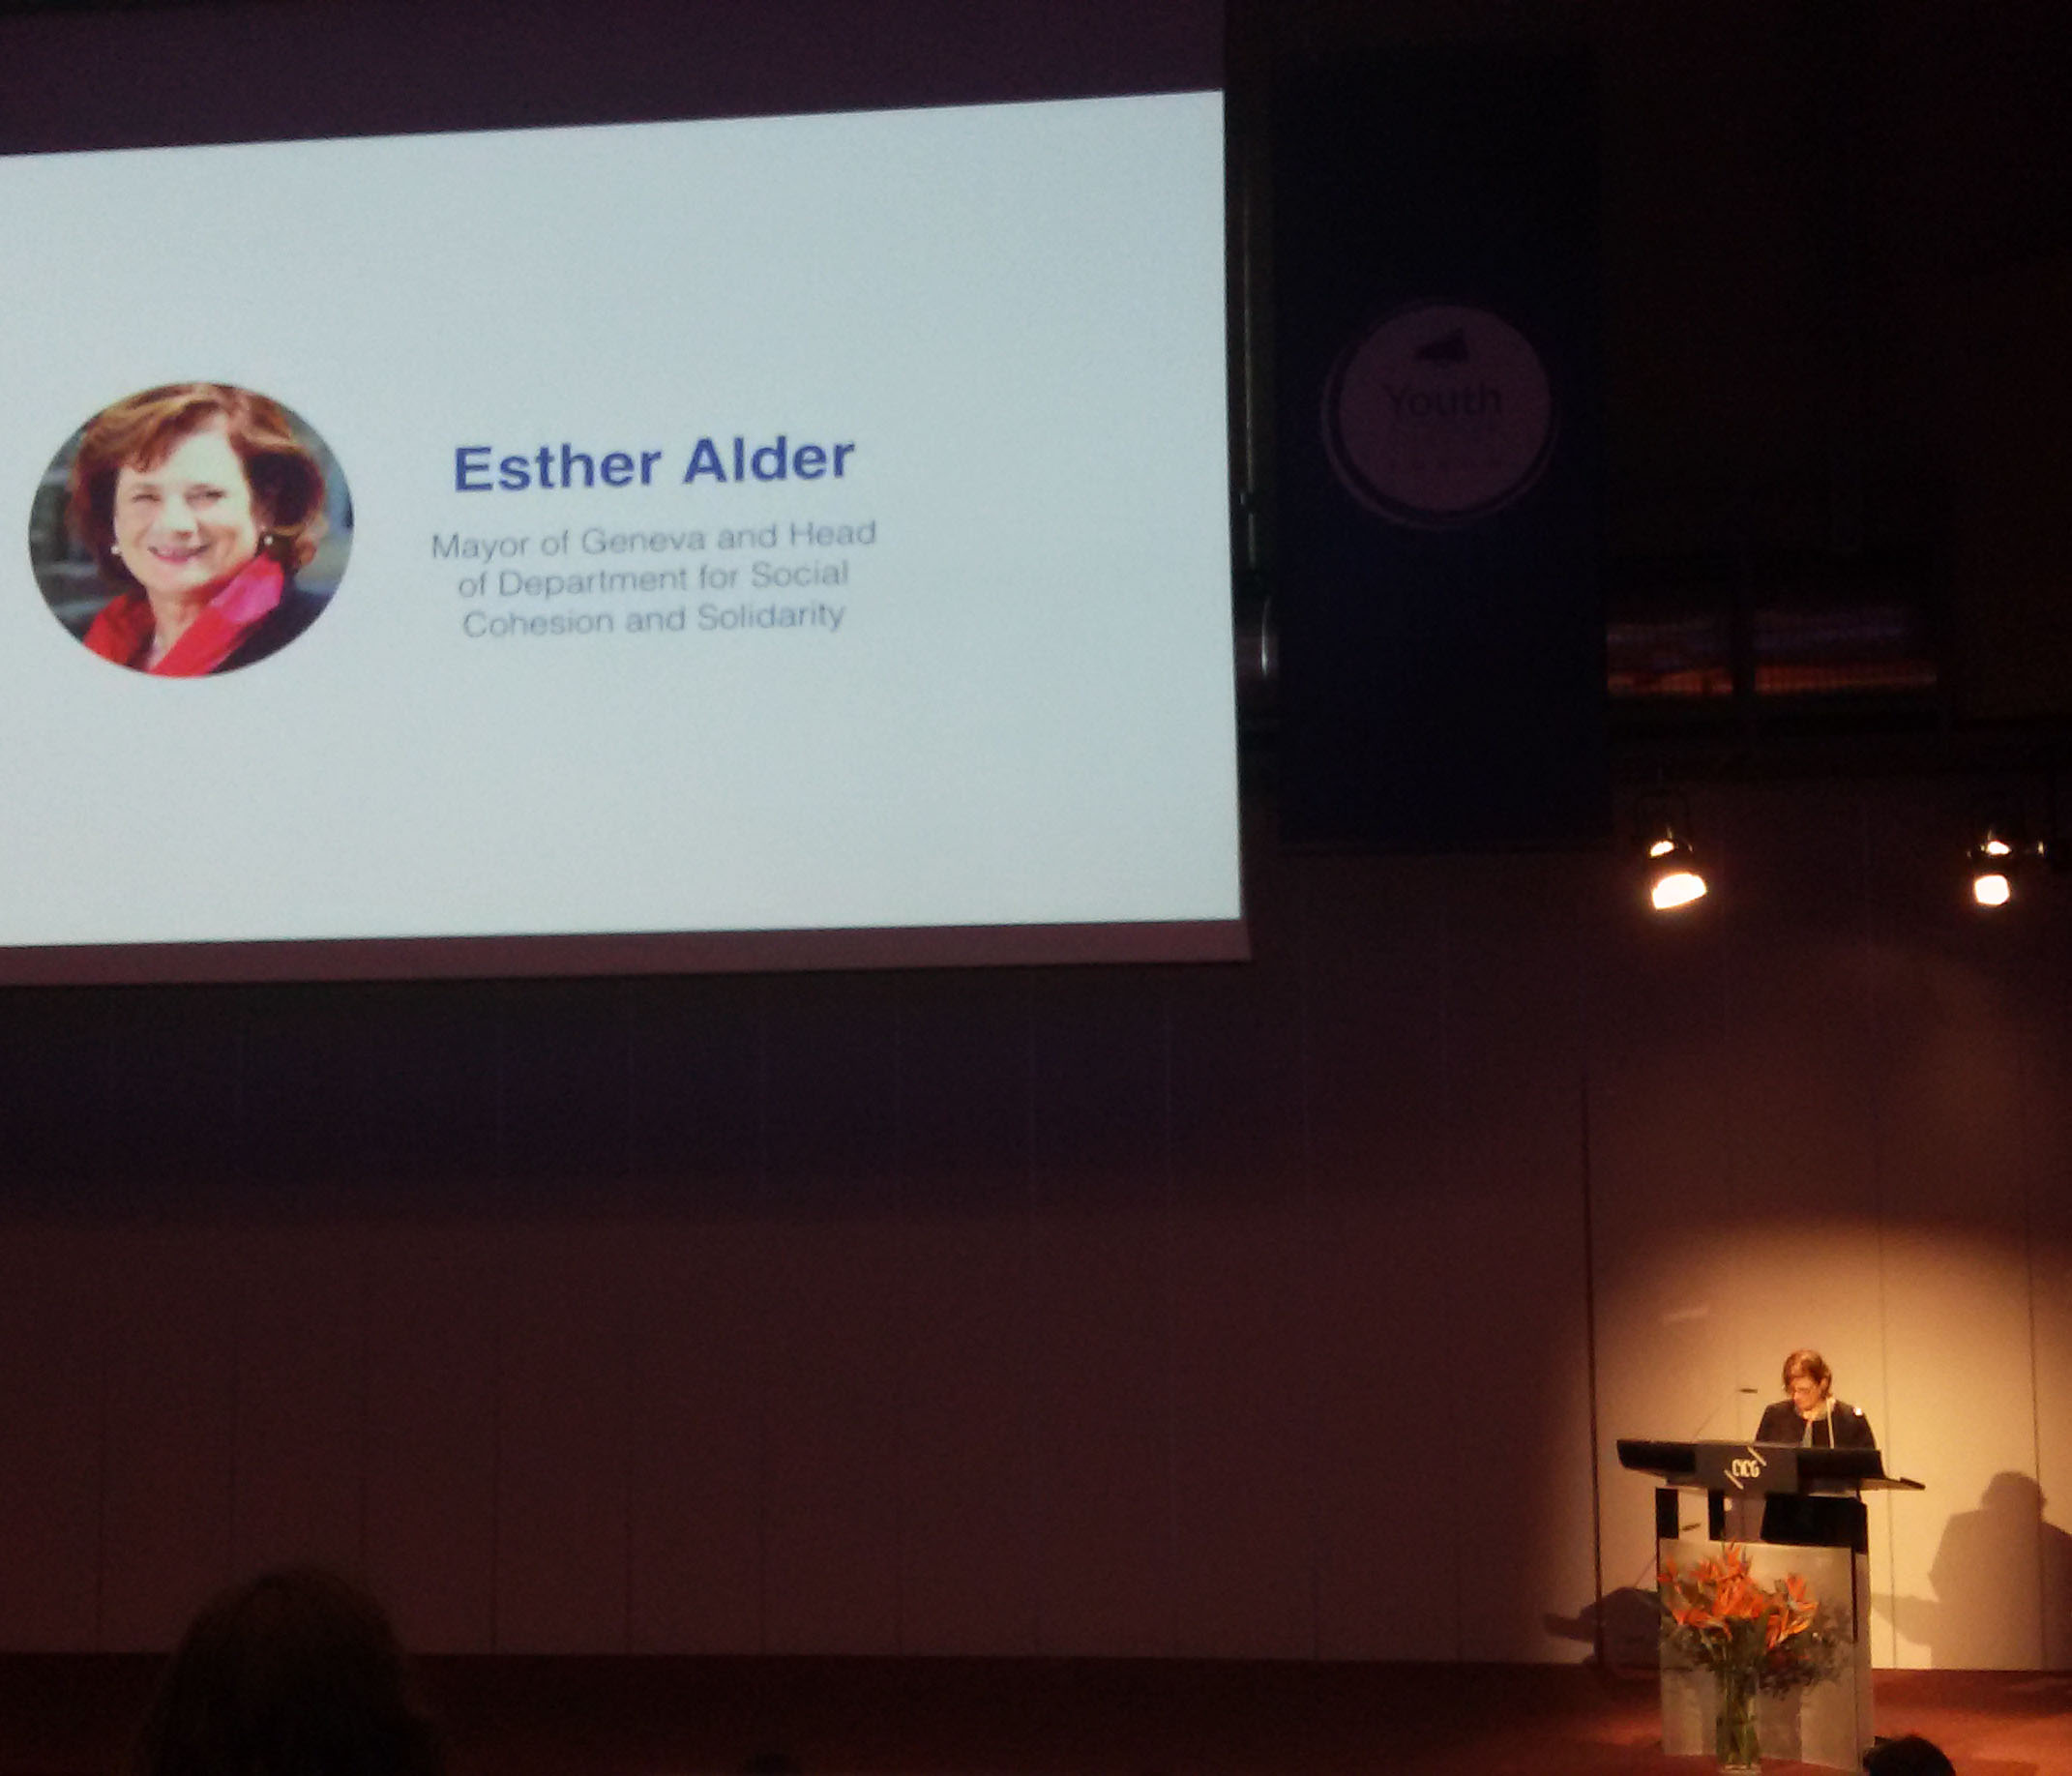 The Mayor of Geneva, Esther Alder